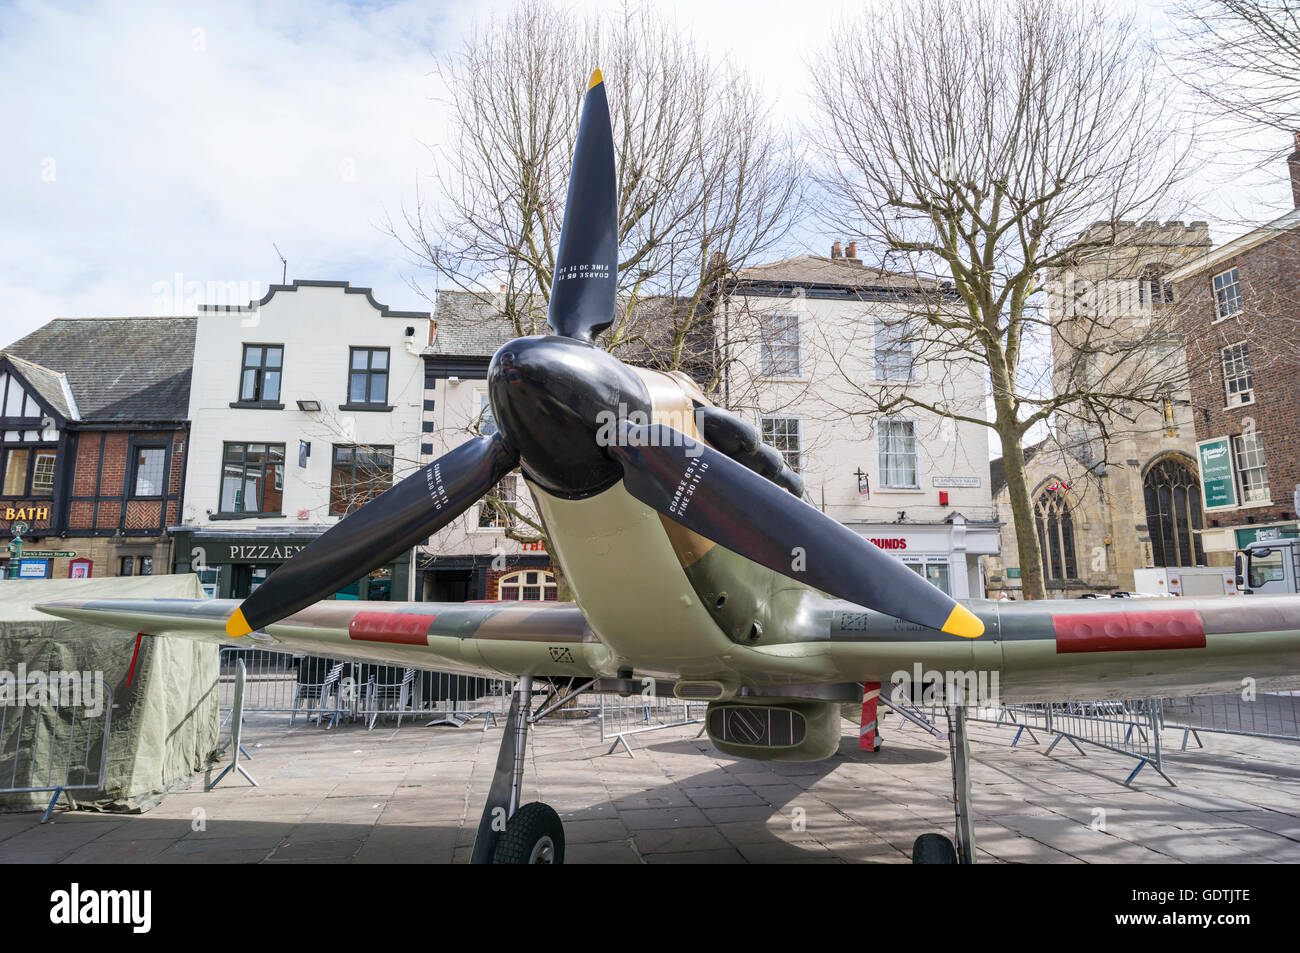 Hurricane Fighter on Display in York Yorkshire - Stock Image